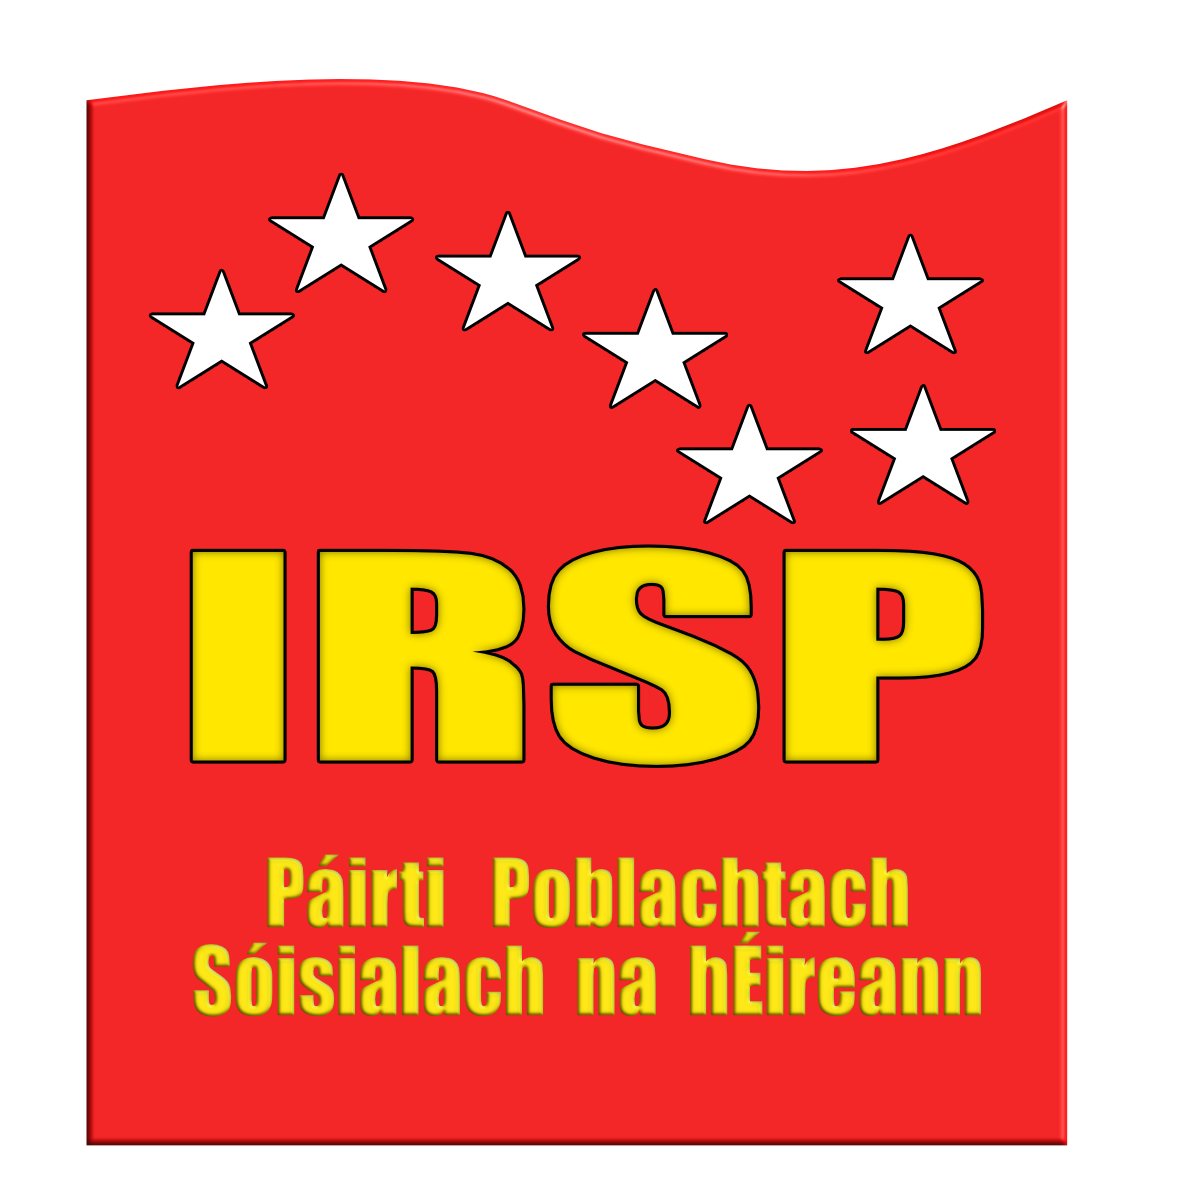 IRSP Condemn disgraceful attack on Postal Worker